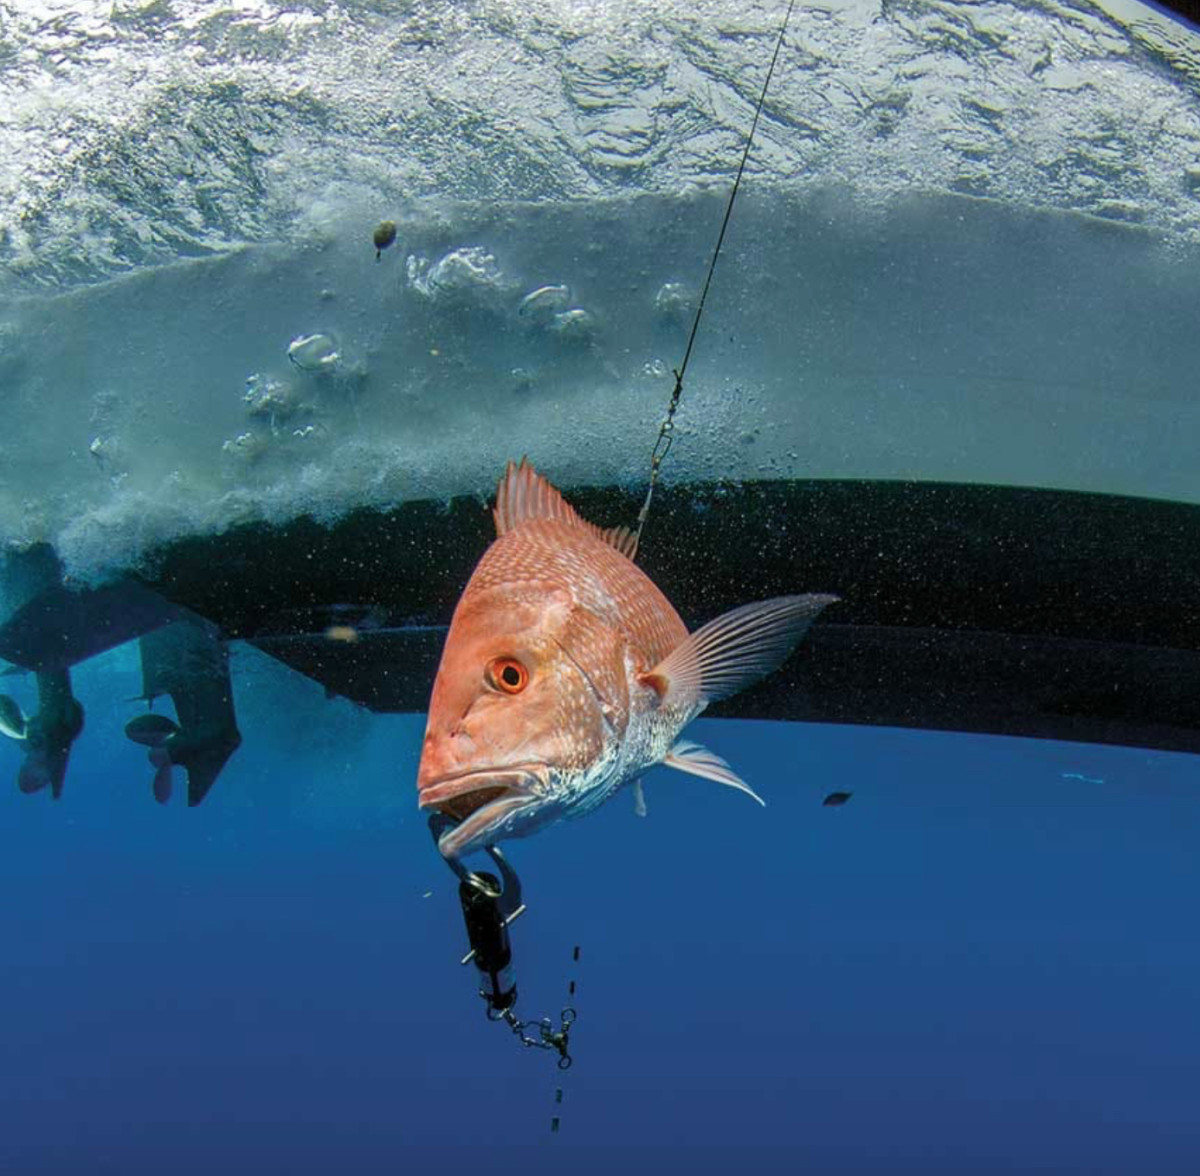 Descending devices have reduced catch-and-release mortality rates by two thirds for some deepwater species. Photo by Adrian Gray.